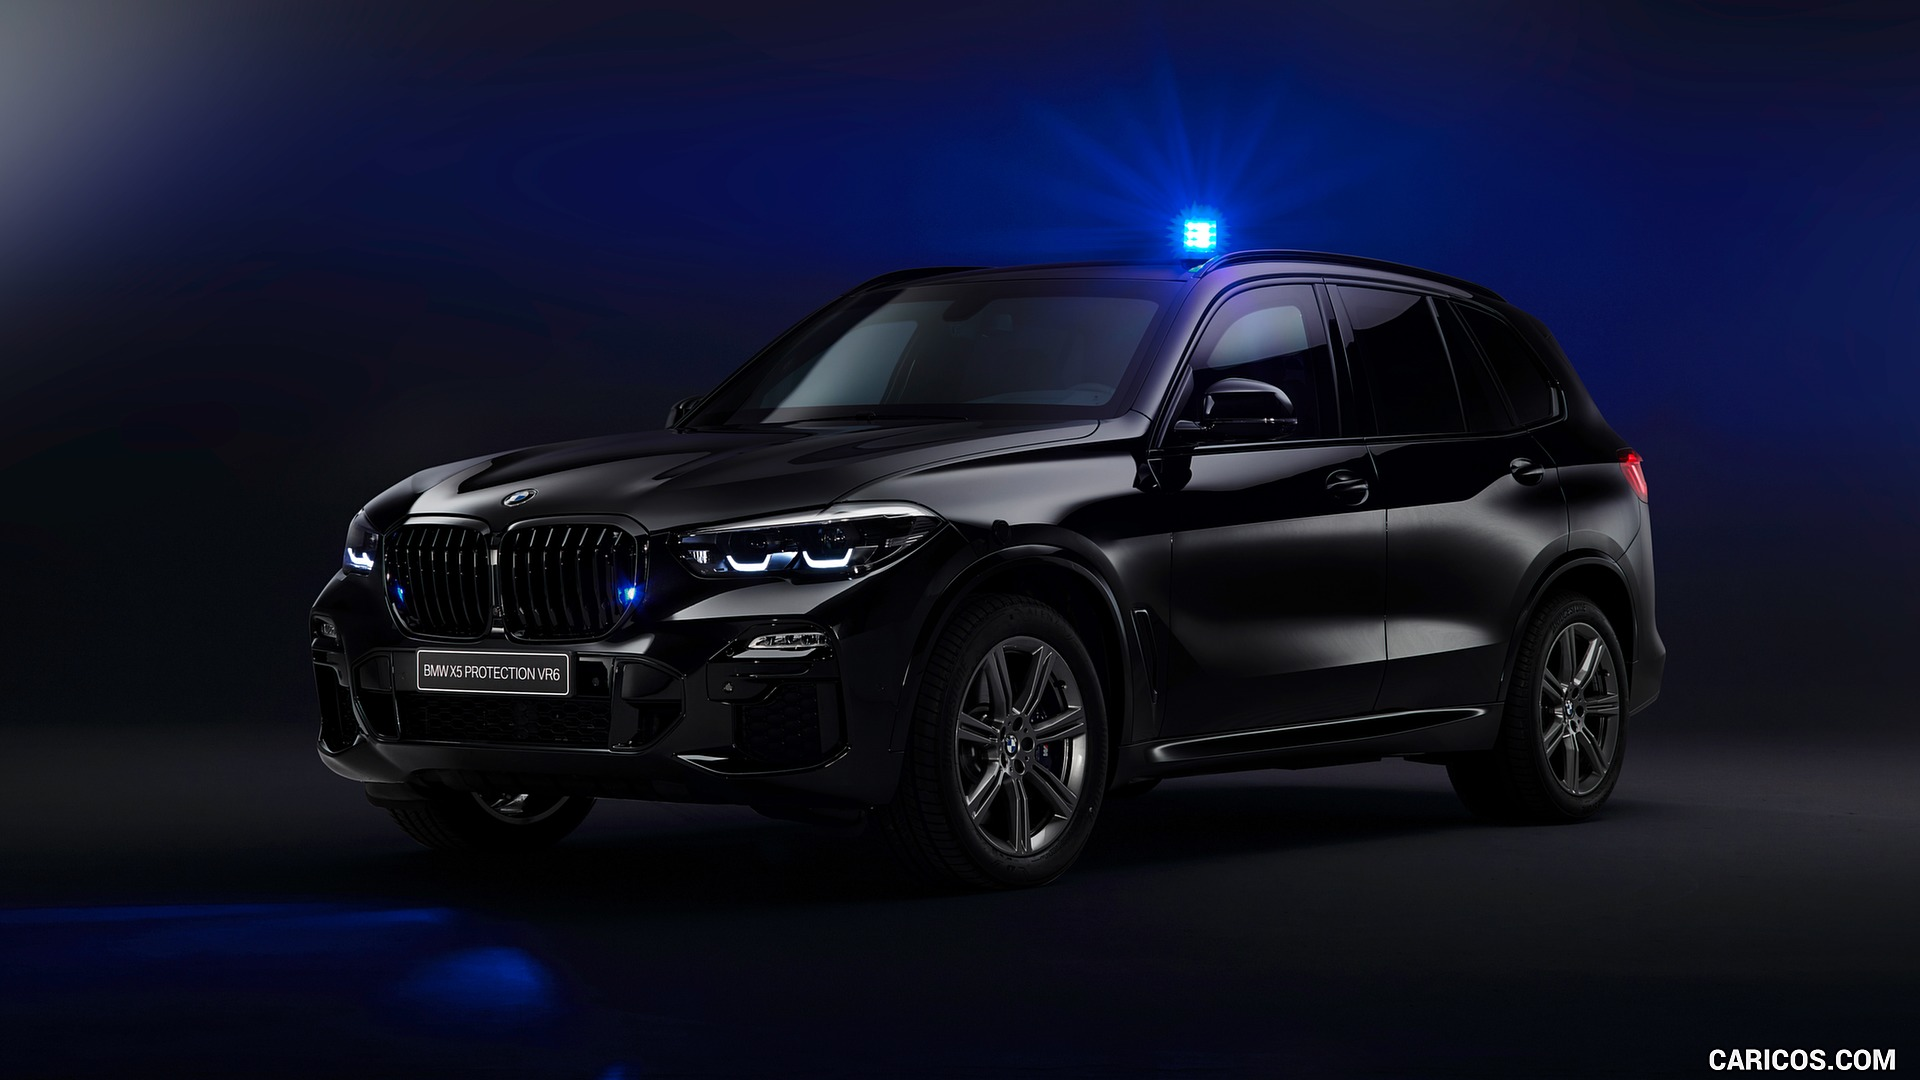 2020 BMW X5 Protection VR6 Armored Vehicle   Front Three Quarter 1920x1080